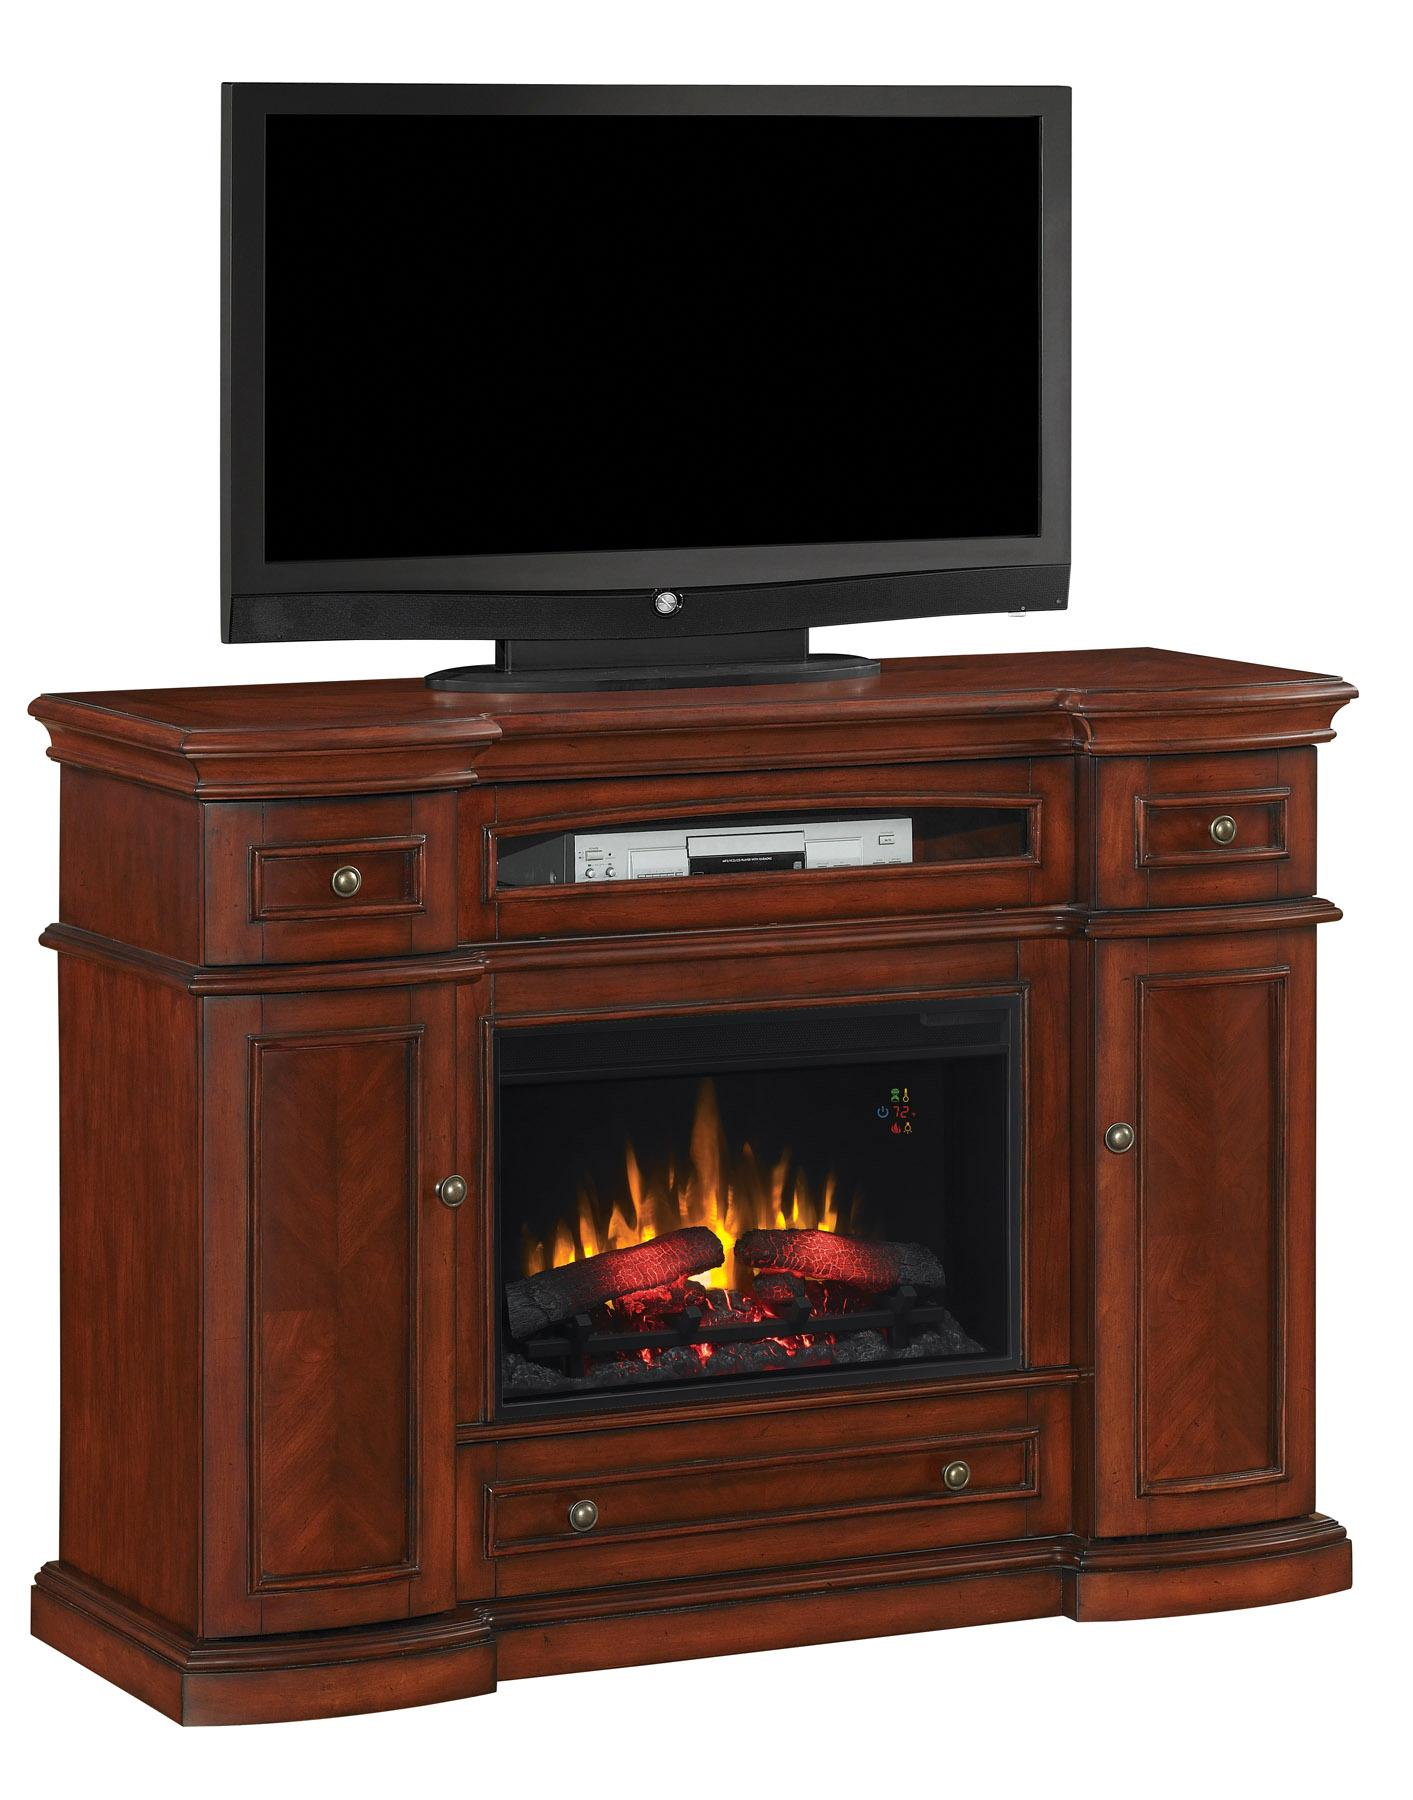 ameriwood p carver electric stand in white stands tv fireplace